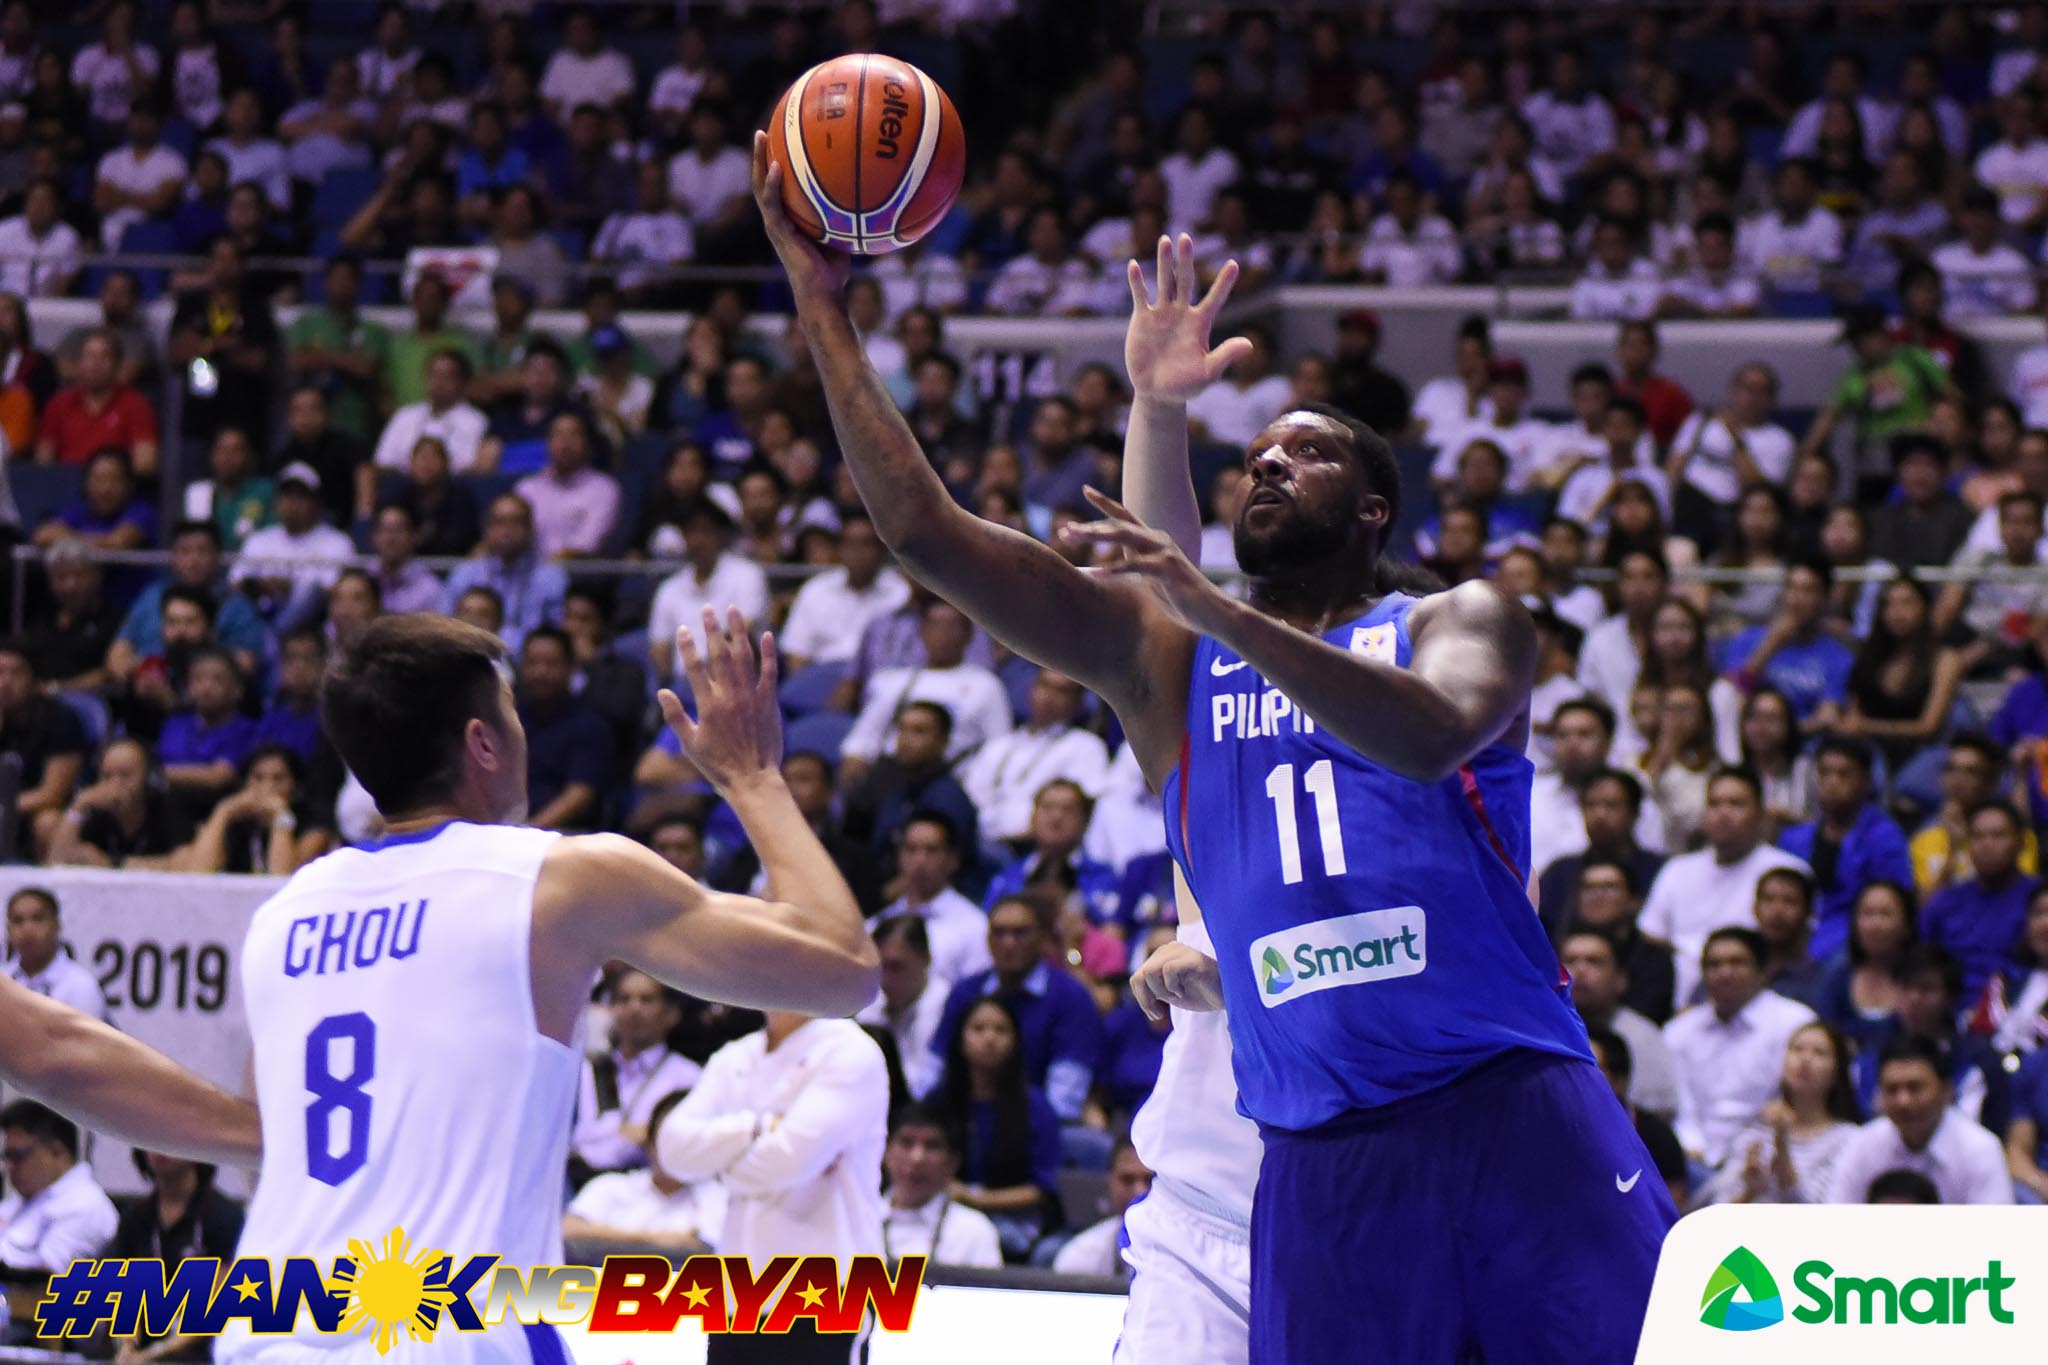 Philippine Sports News - Tiebreaker Times Will Andray Blatche be part of Gilas pool? 2019 FIBA World Cup Qualifiers Basketball Gilas Pilipinas News  Andray Blatche 2019 FIBA World Cup Qualifiers Group B 2019 FIBA World Cup Qualifiers